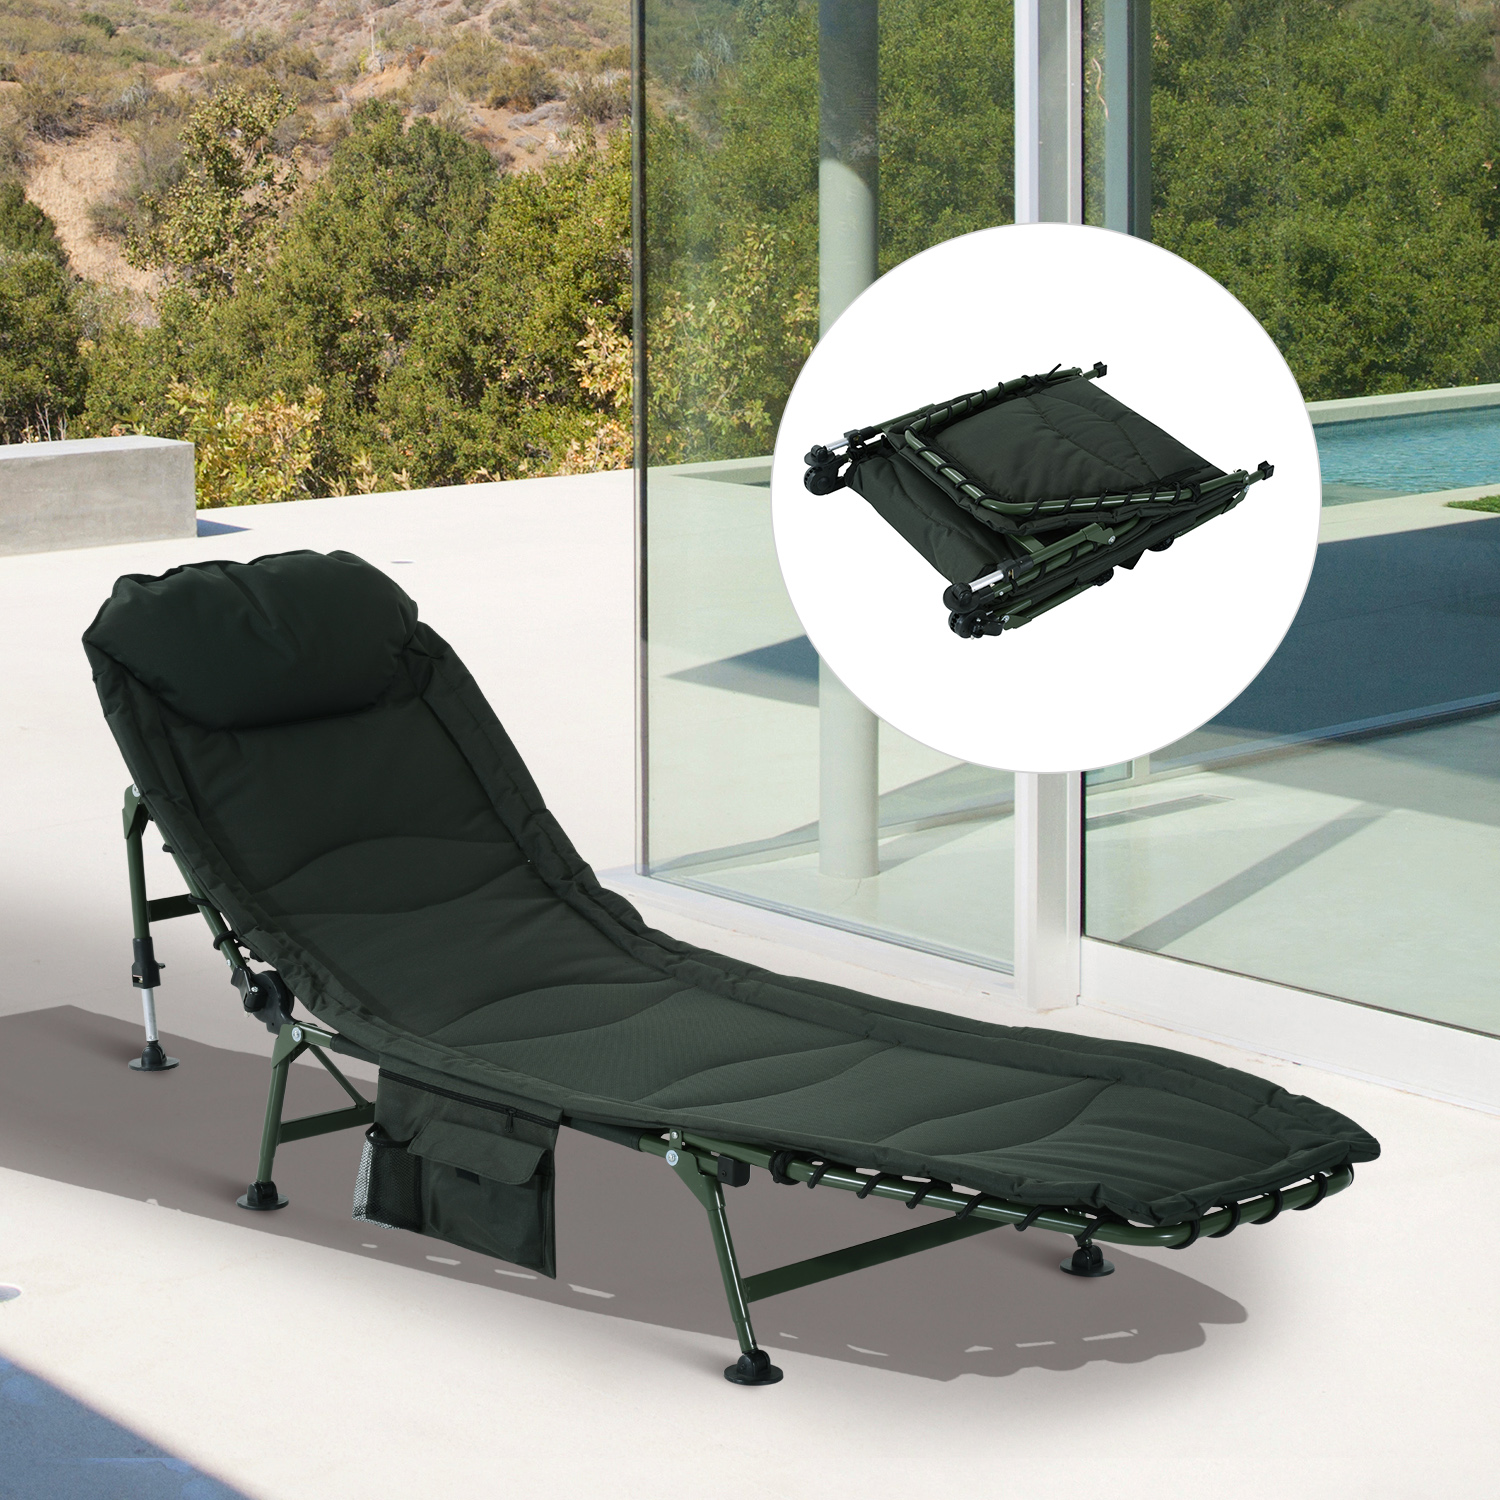 Outsunny folding recliner lounge chair outdoor camping portable w side bag ebay - Outdoor mobel lounge ...